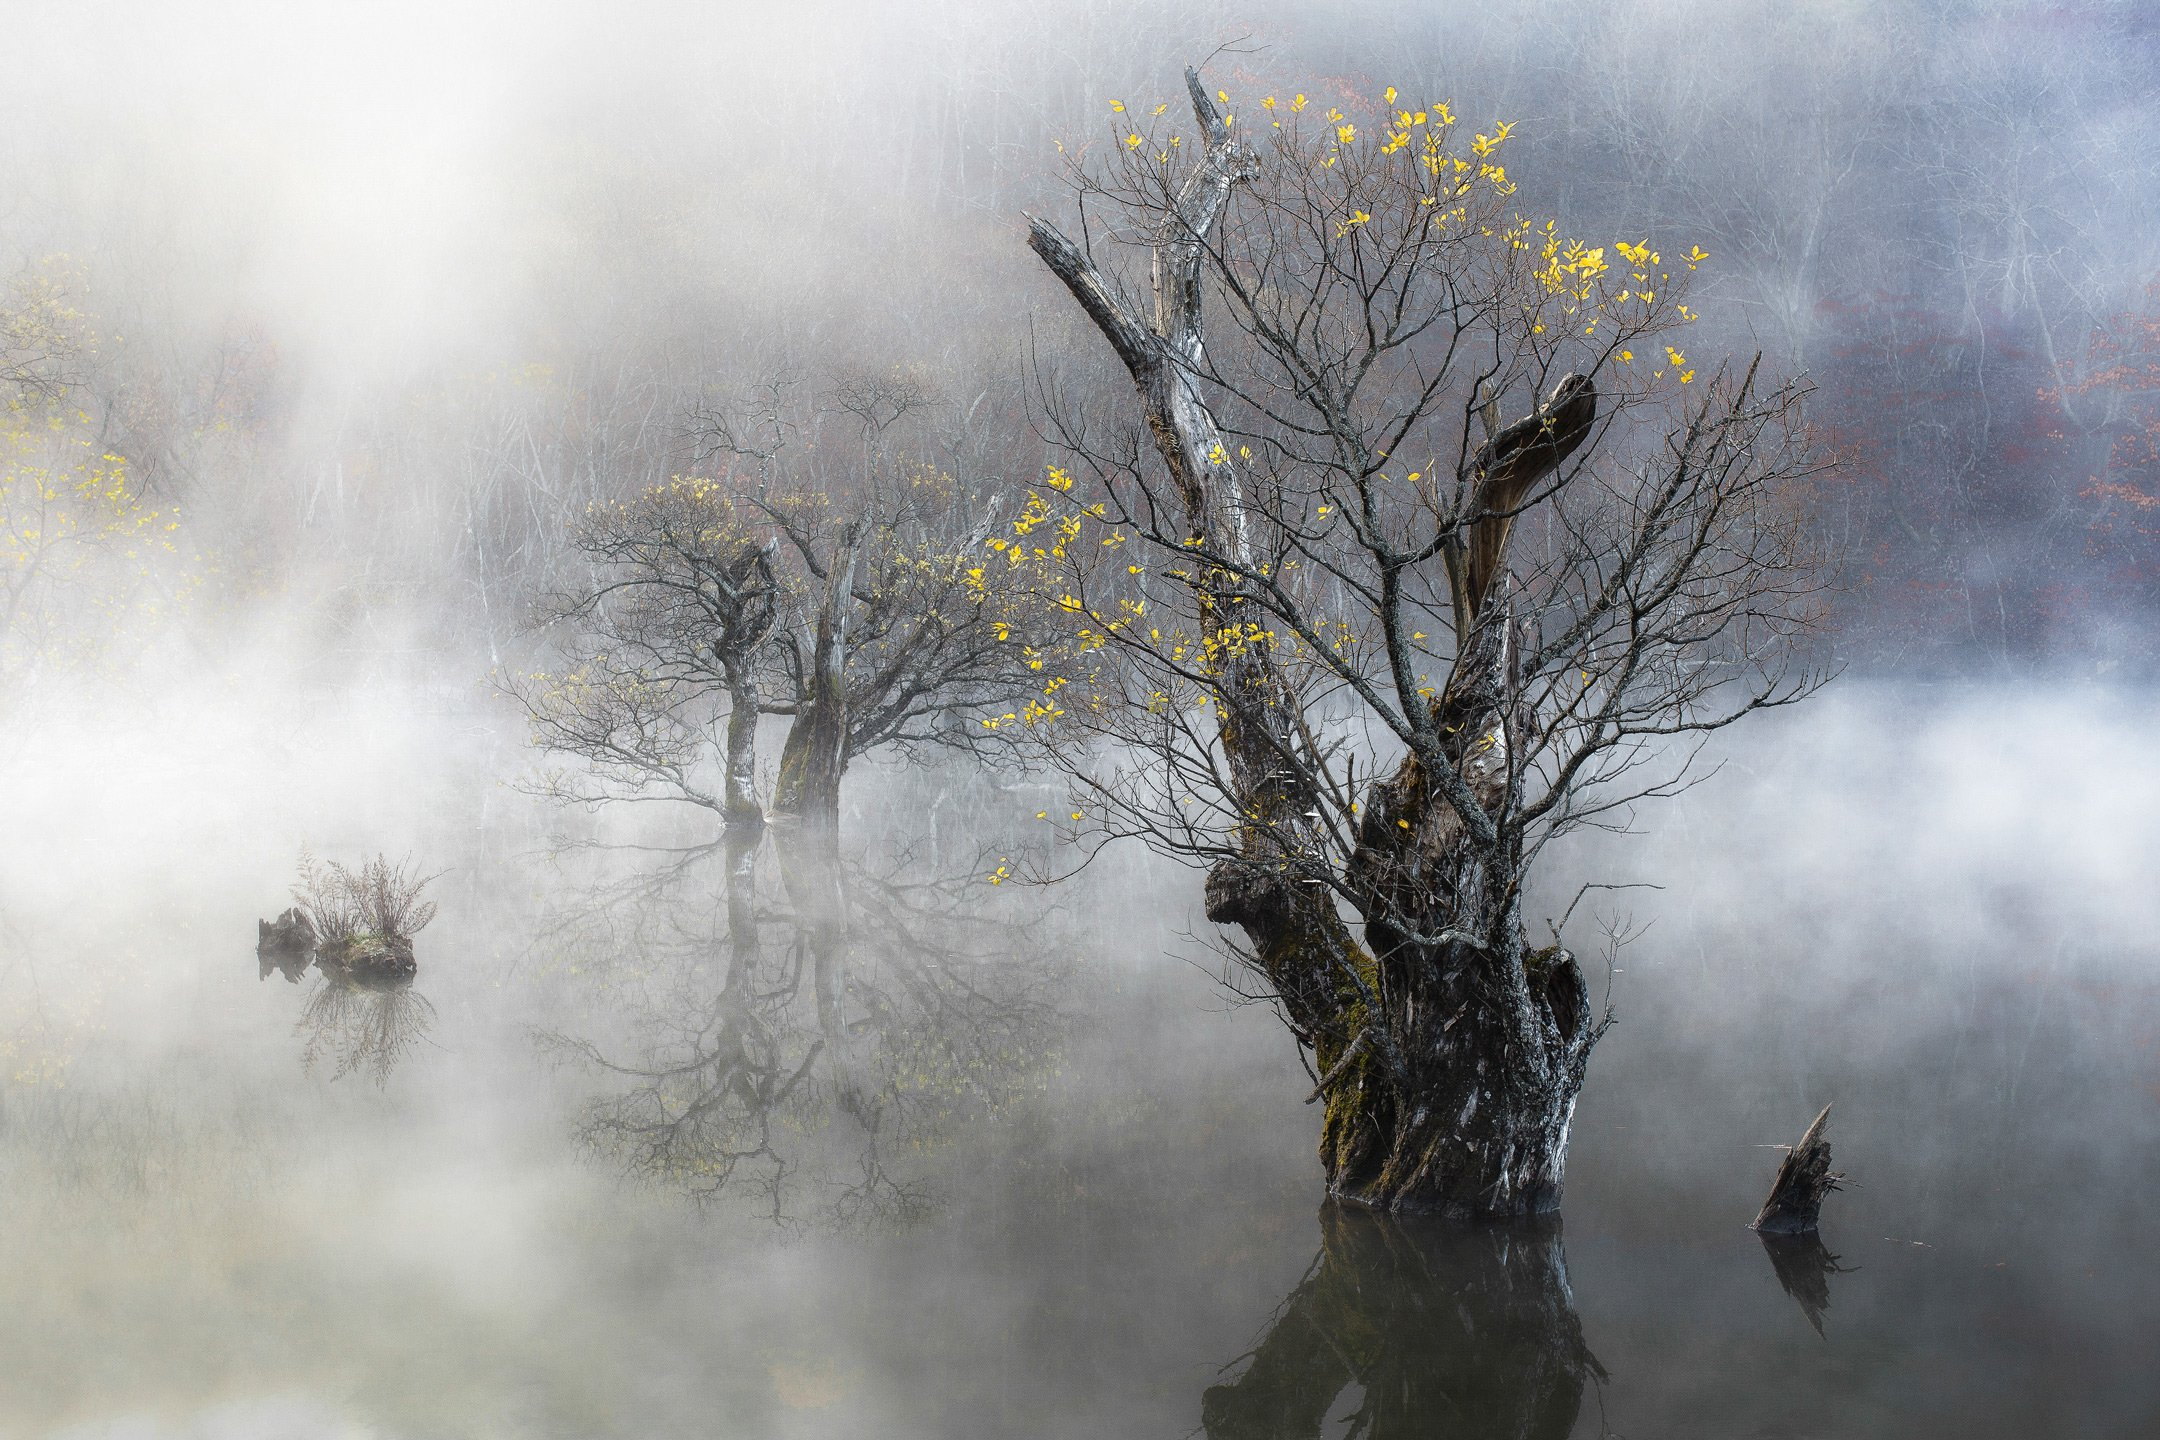 Autumn, Fog, Jusanji, Korea, Life, Mist, Morning, Nature, Reflection, Tree, Willow, 류재윤